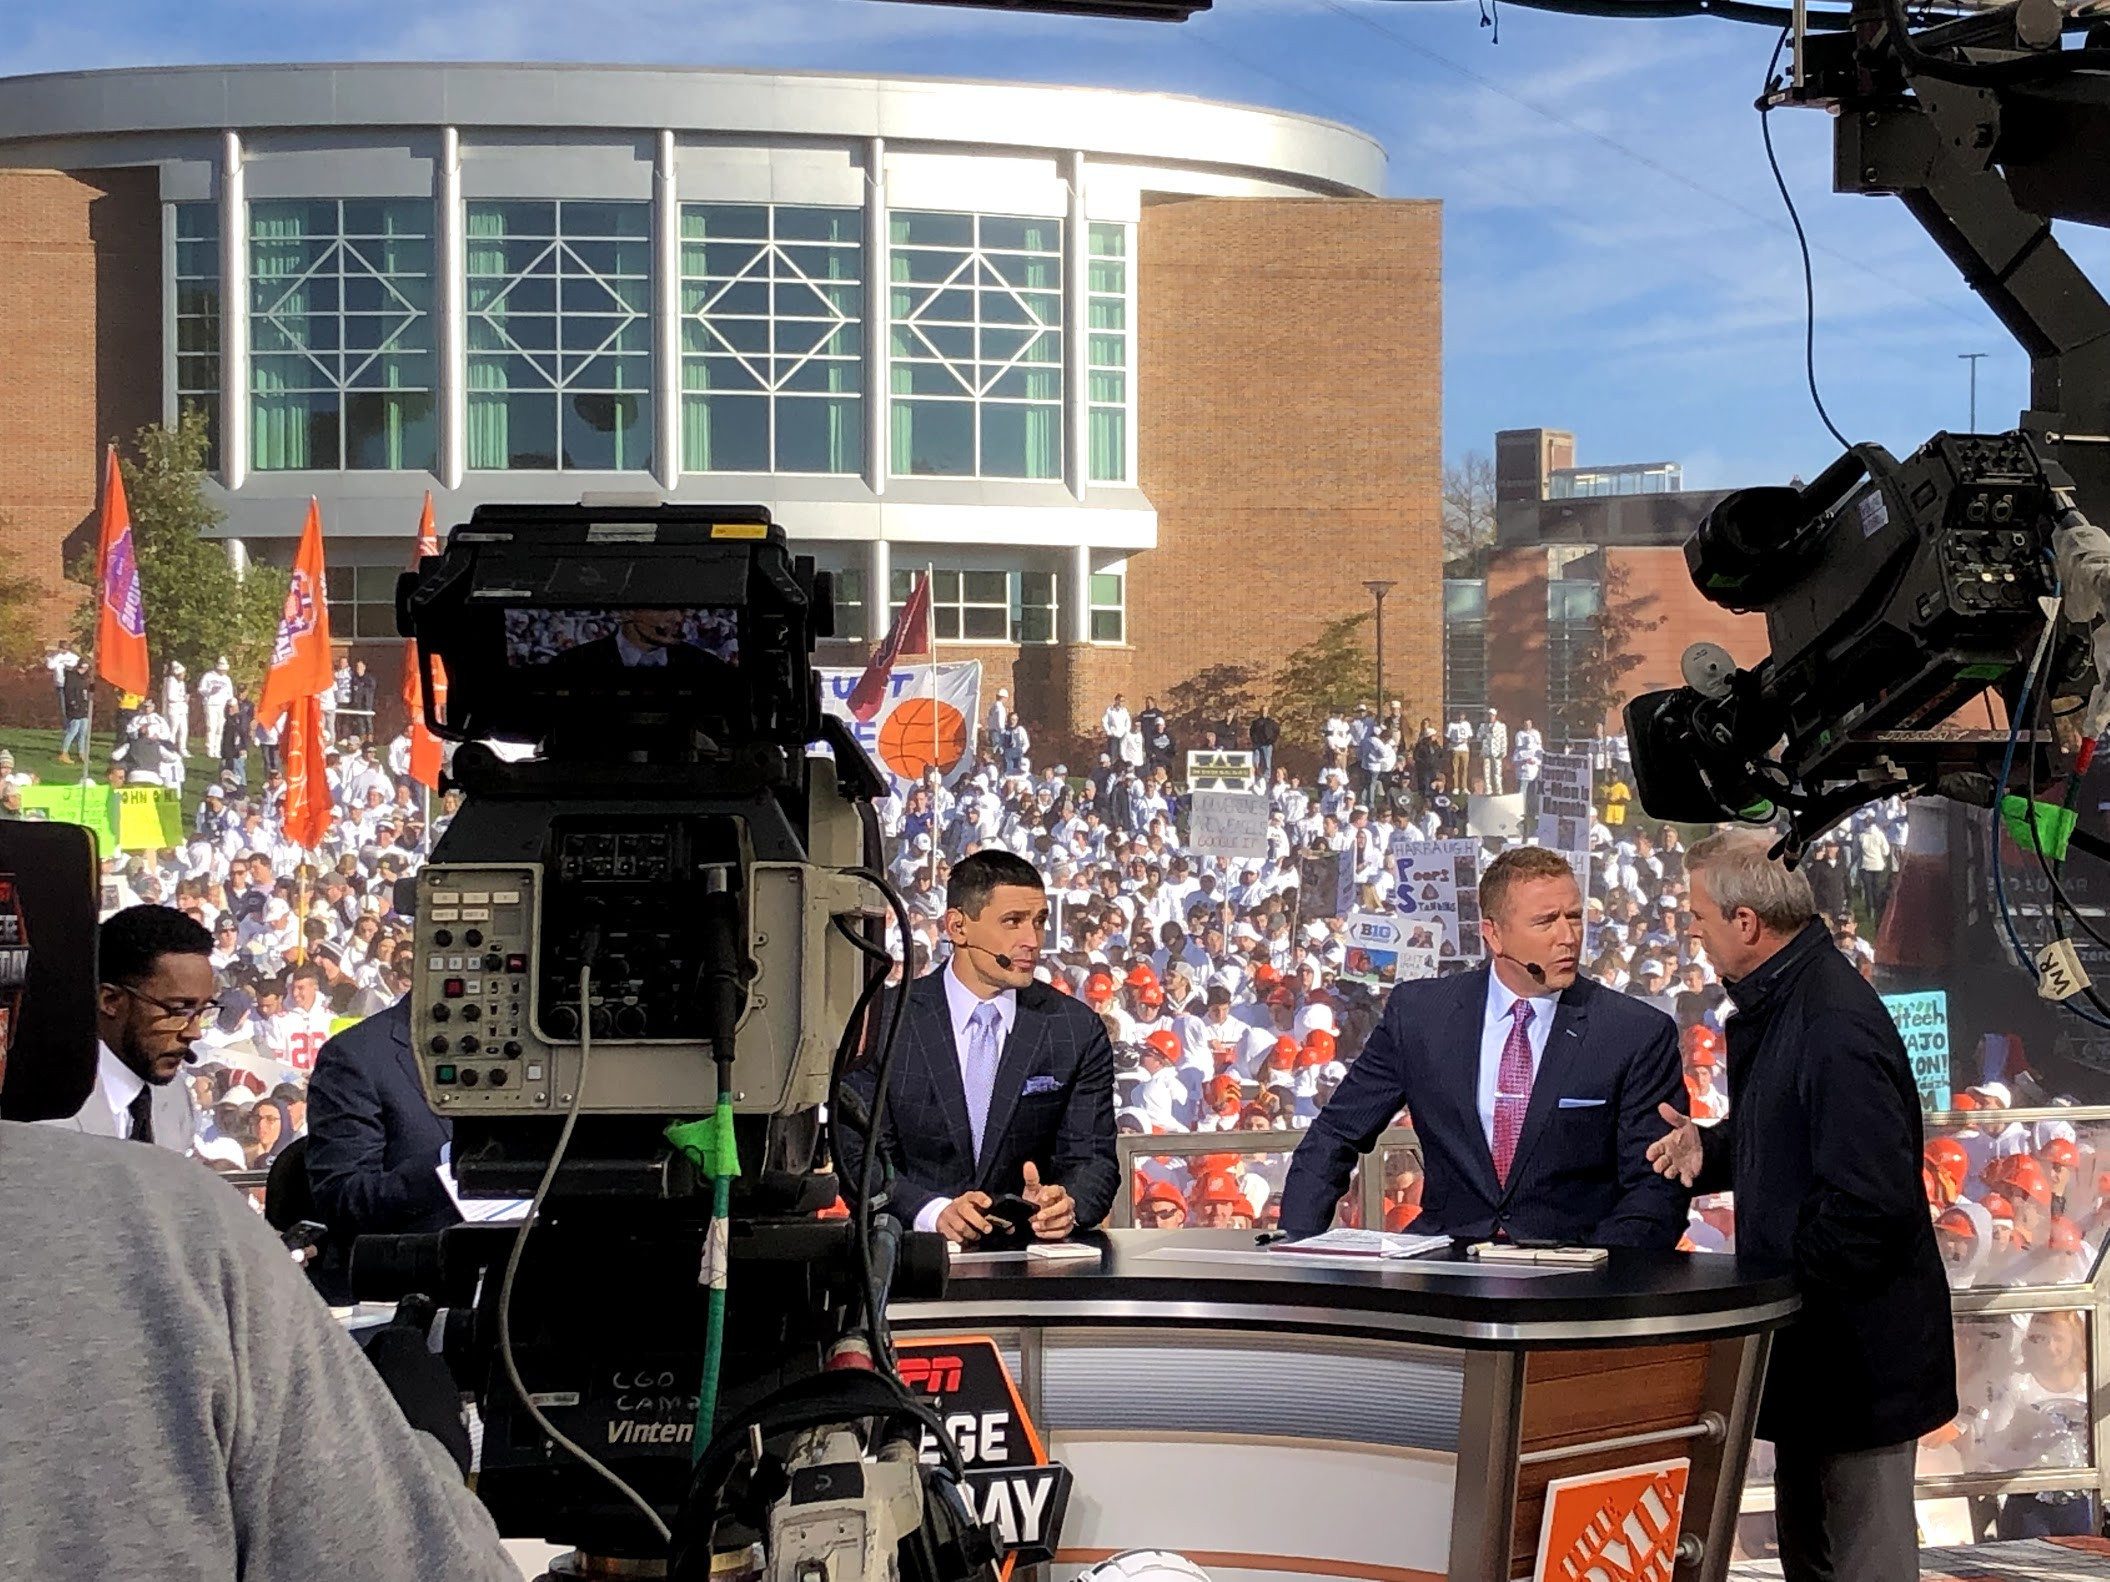 ESPN's GameDay plays on, weather or not